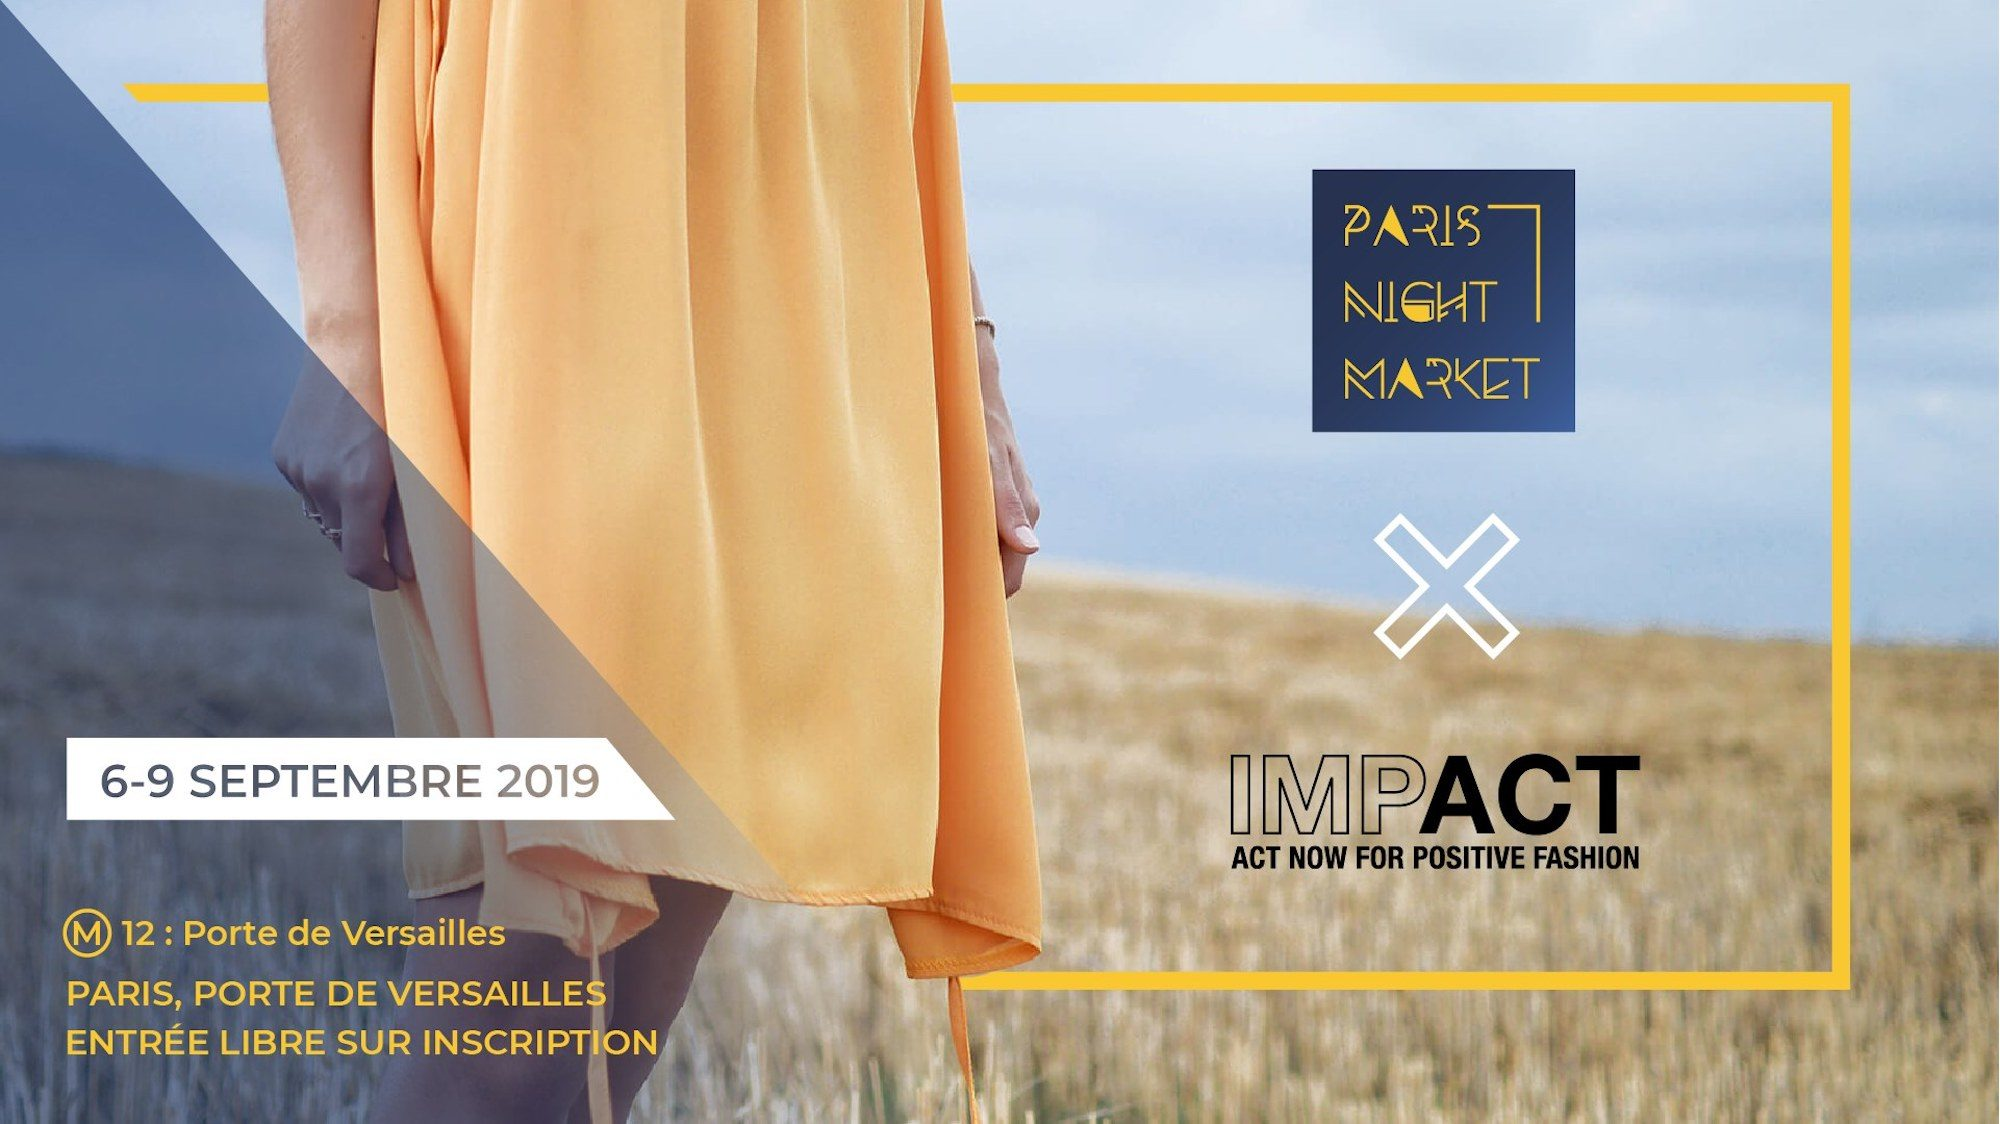 A poster for the event Paris Night Market x Impact at Porte de Versailles of a woman wearing an orange skirt in a field.